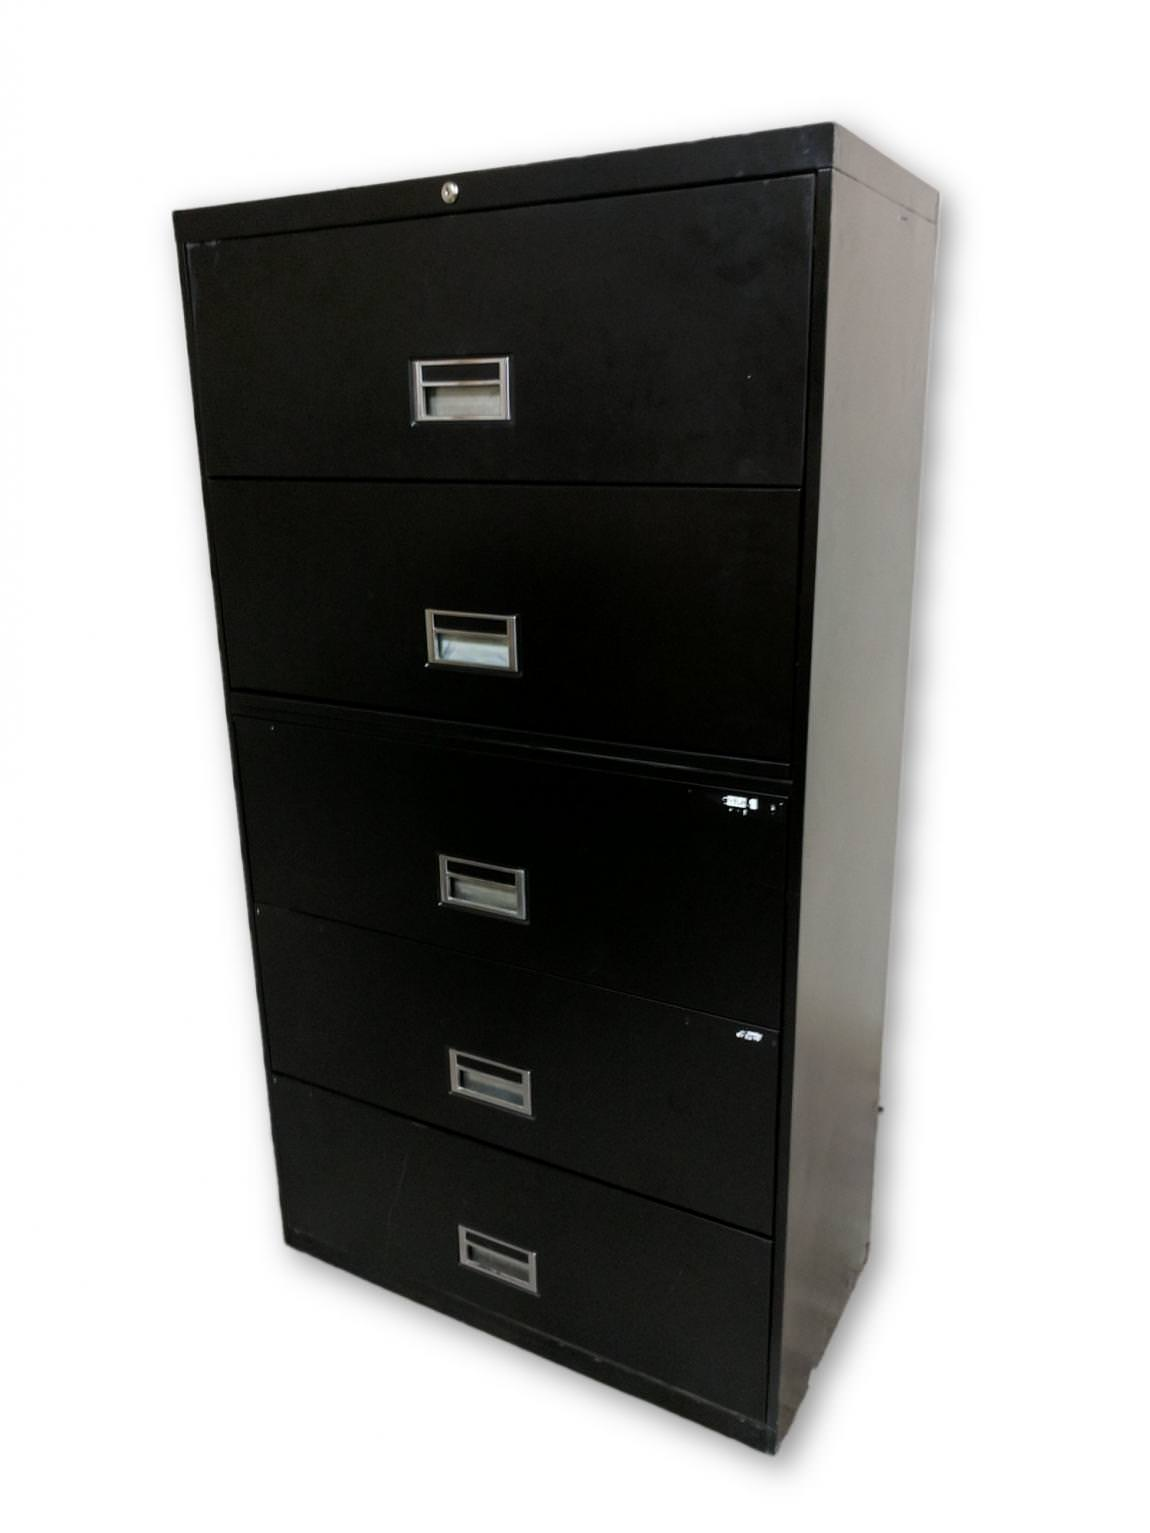 Images of Black 5 Drawer Lateral File Cabinet